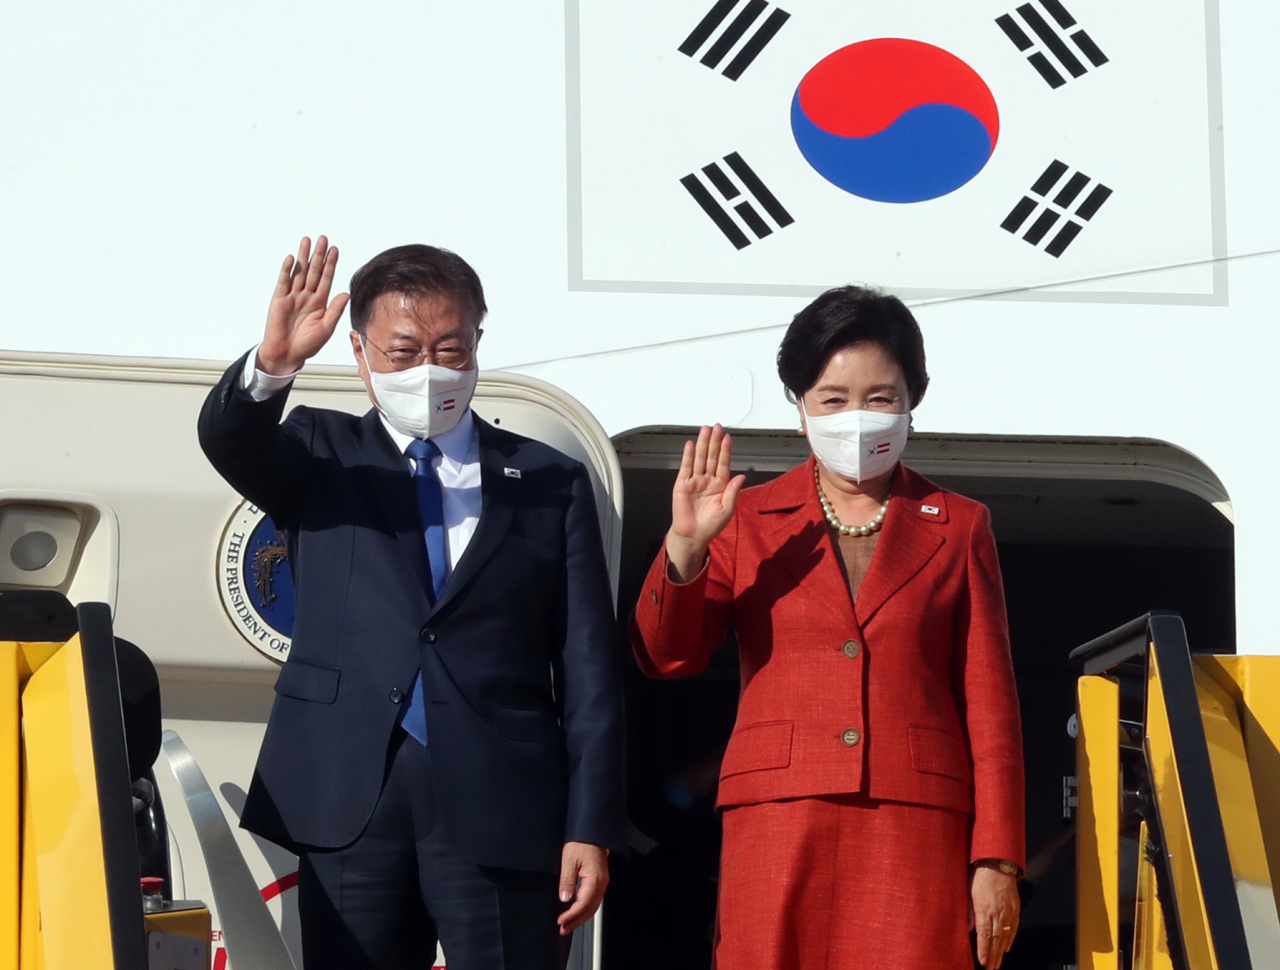 South Korean President Moon Jae-in and first lady Kim Jung-sook wave, as they arrive in Vienna, Austria, Sunday. (Yonhap)